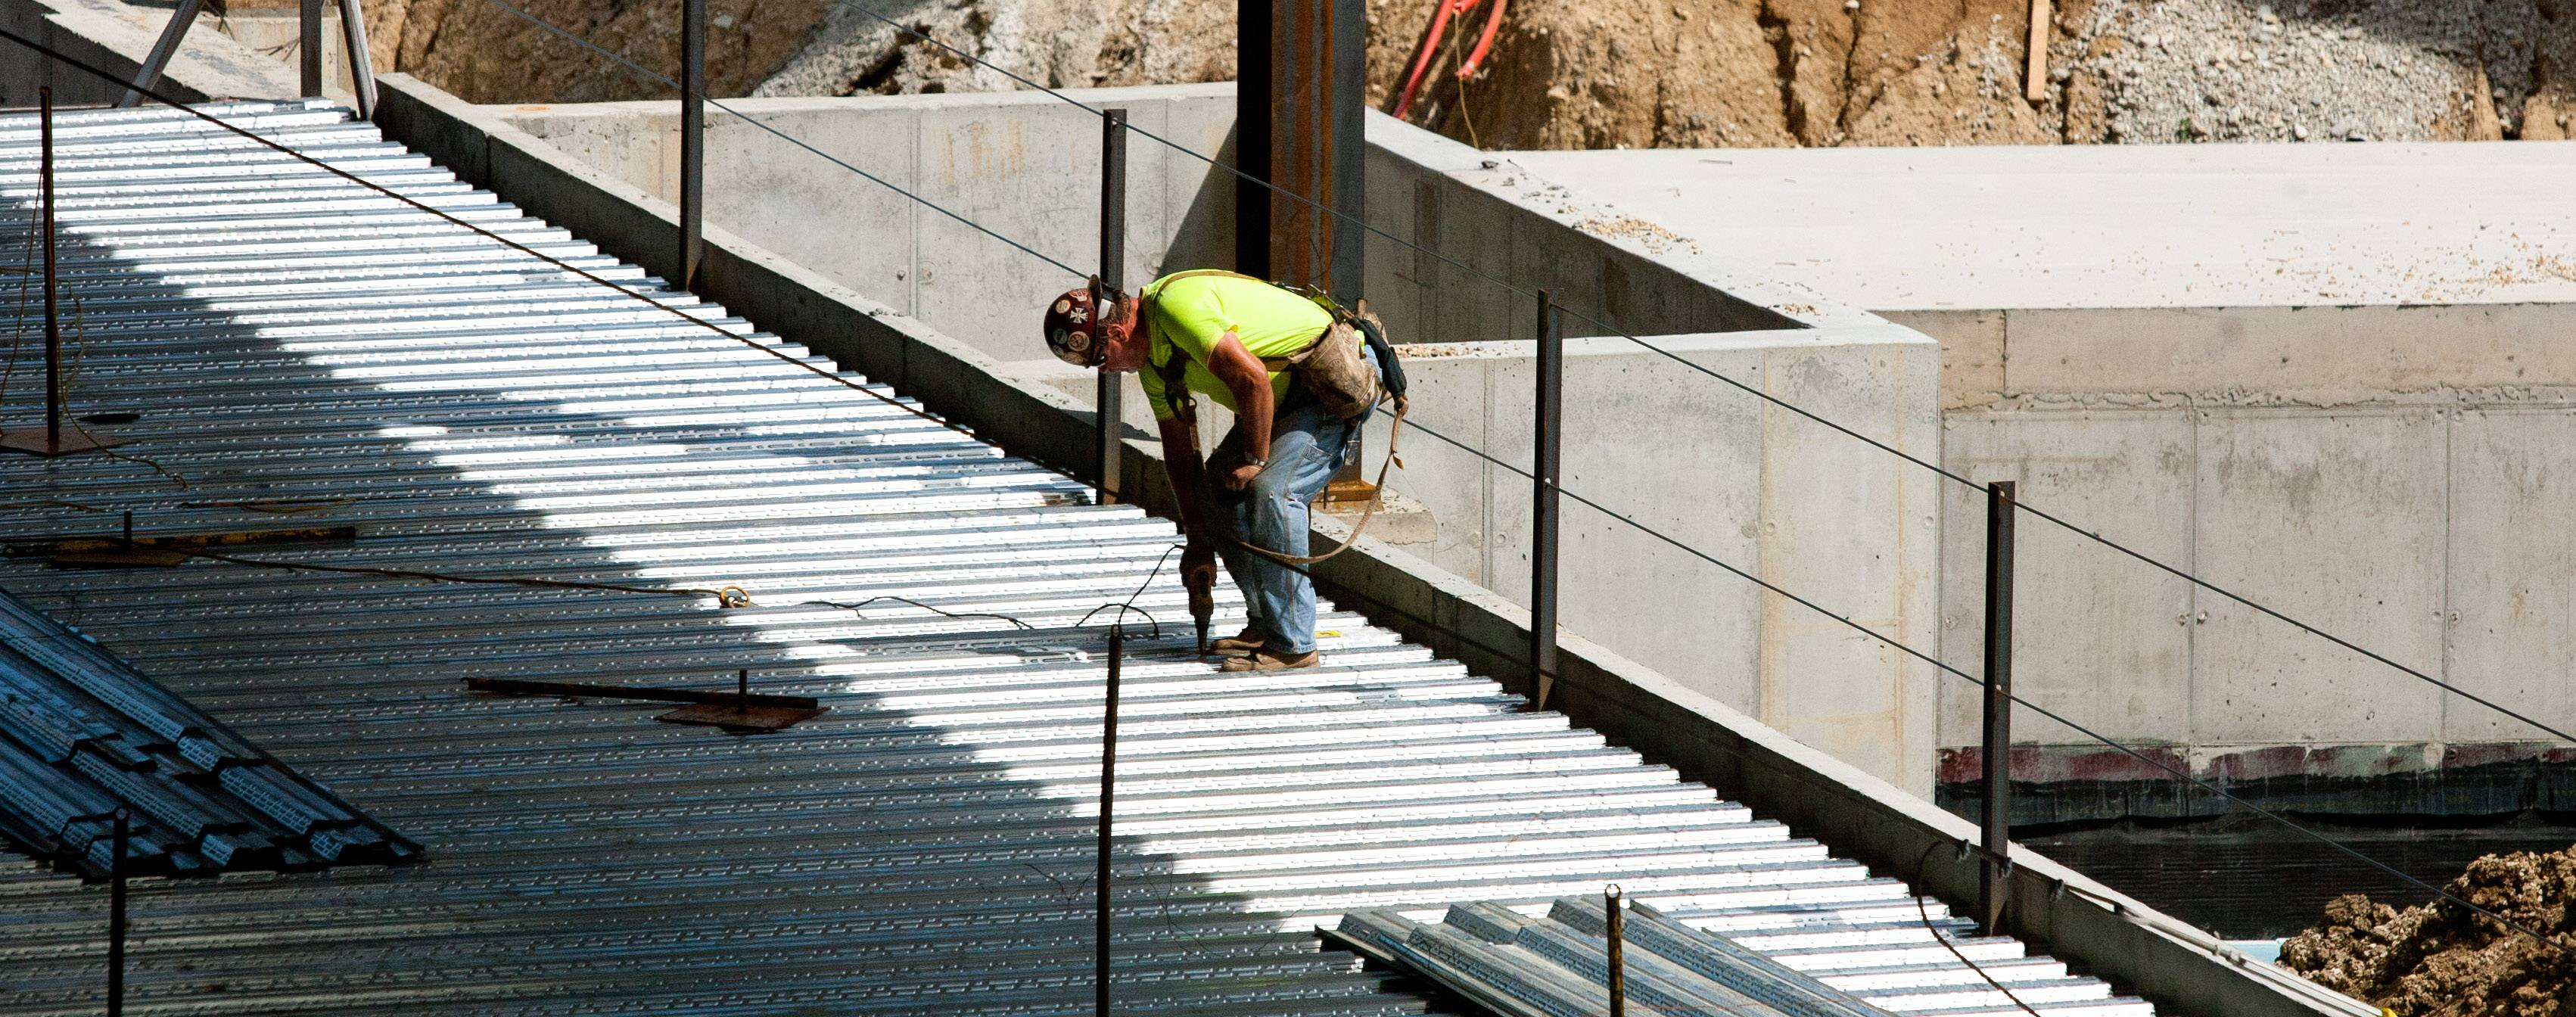 A construction worker secures decking material on Benedictine University's new College of Business building, which is scheduled for completion next summer.